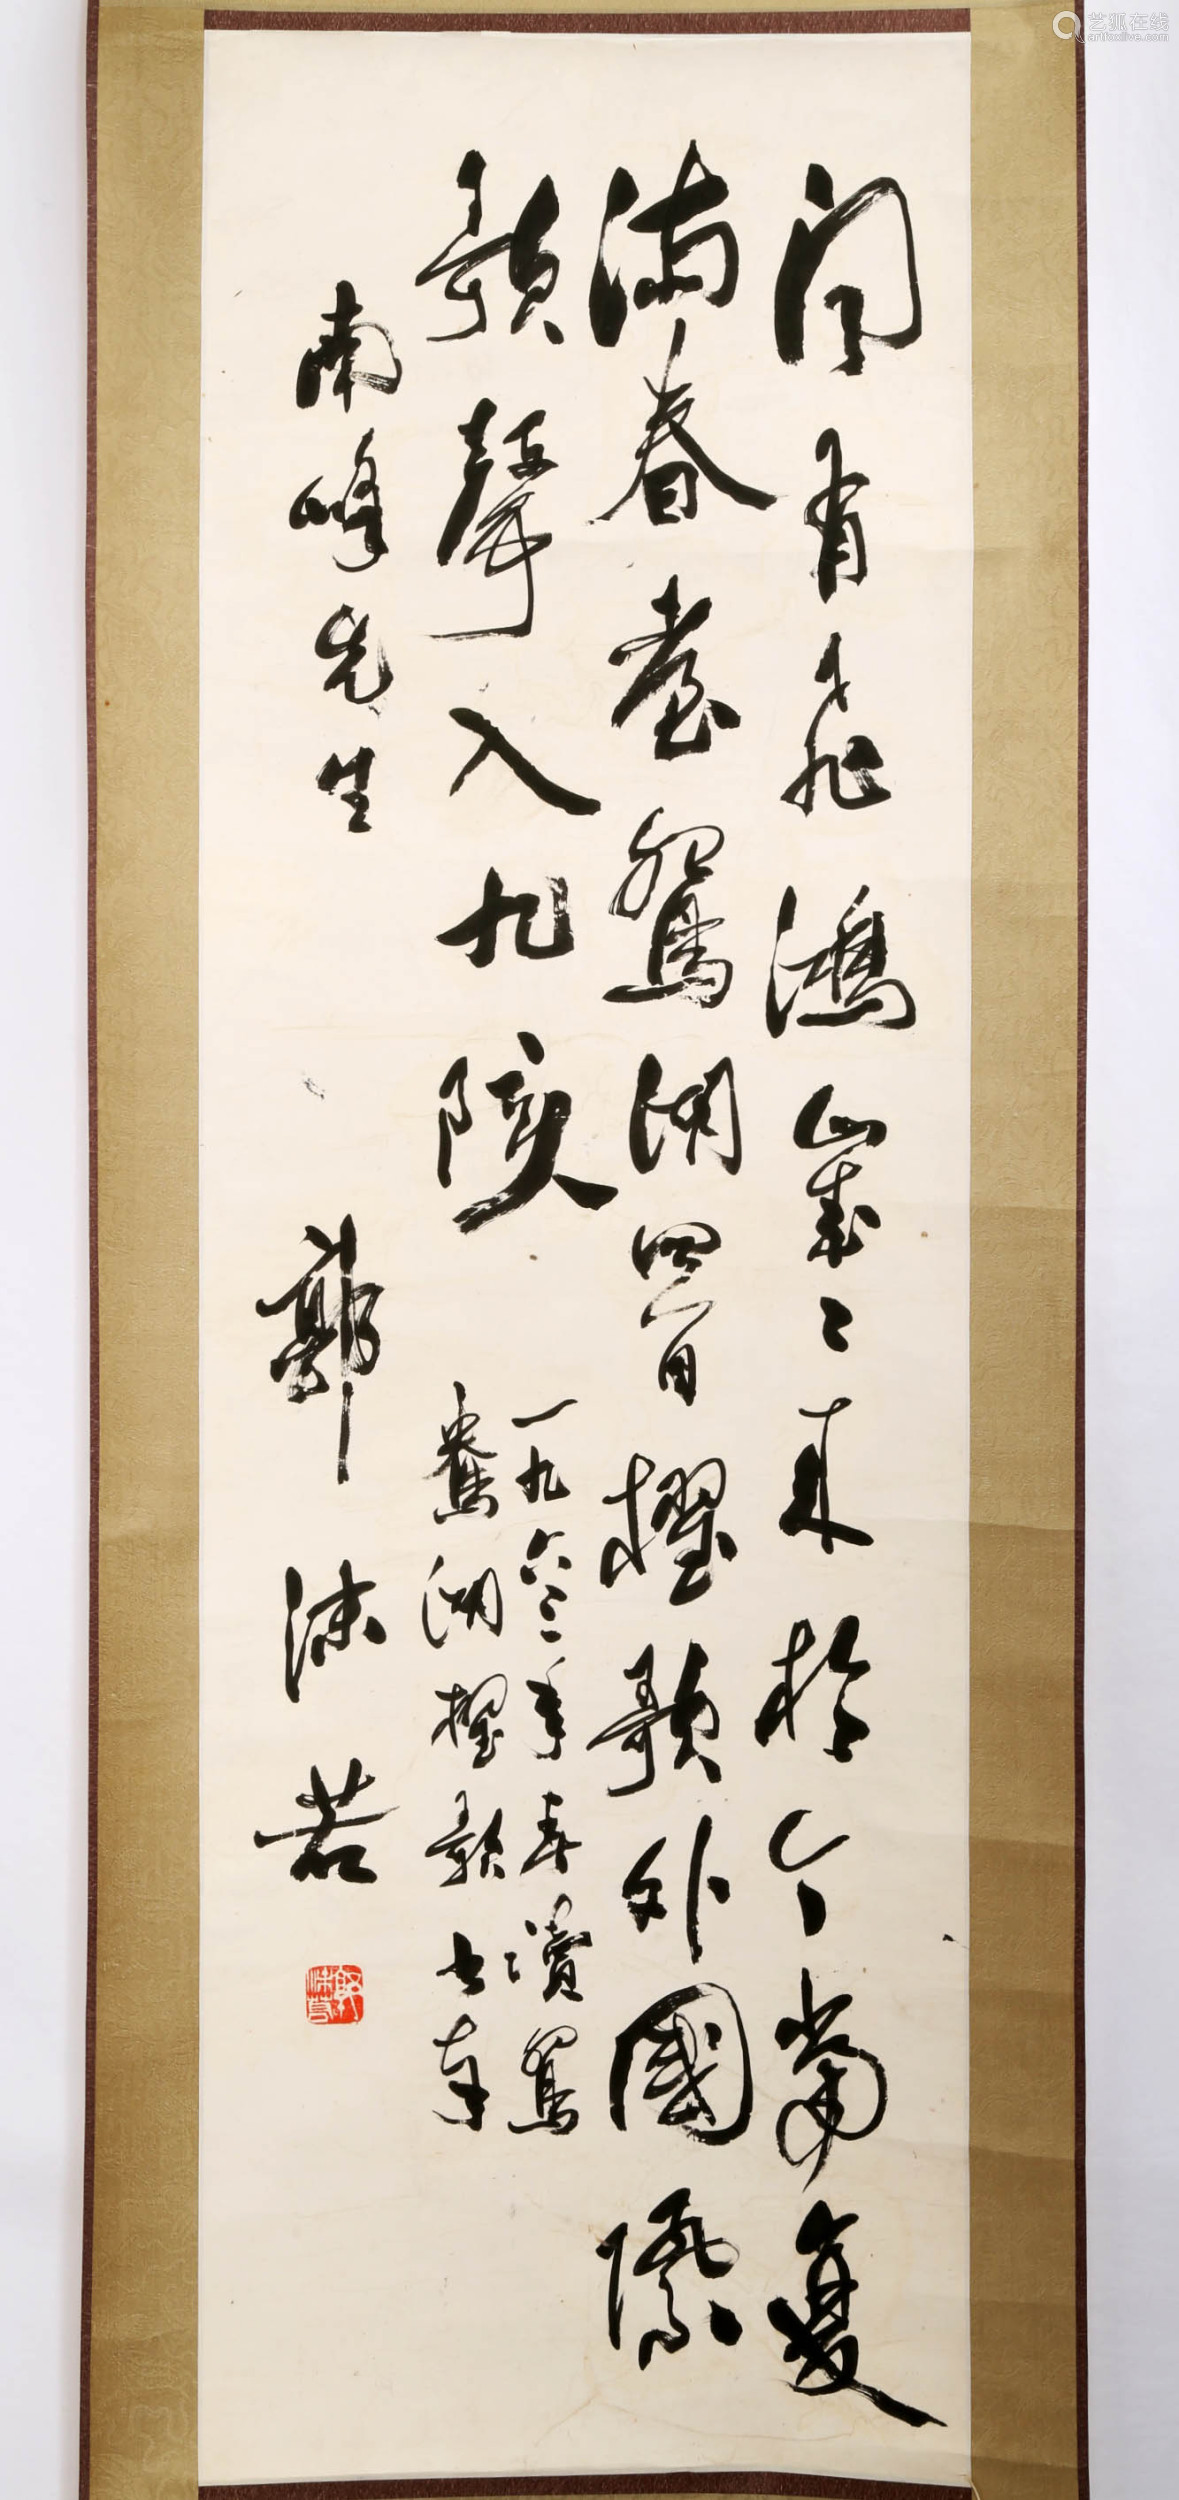 SIGNED GUO MORUO (1892-1978). A INK ON PAPER CALLIGRAPHY HANGING SCROLL. H500.